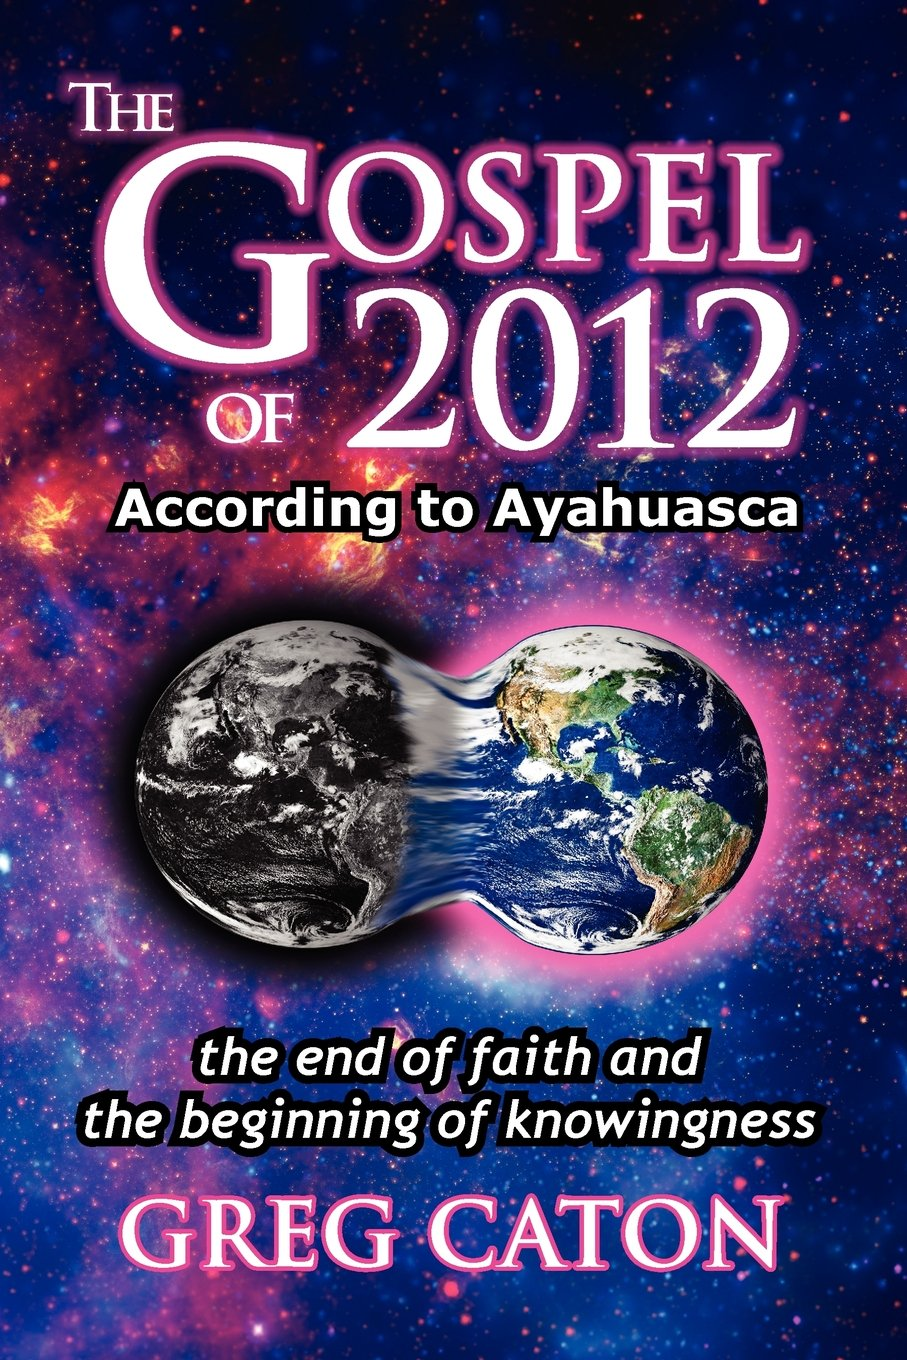 Read Online The Gospel of 2012 According to Ayahuasca: The End of Faith and the Beginning of Knowingness [Final 2013 Edition] ebook